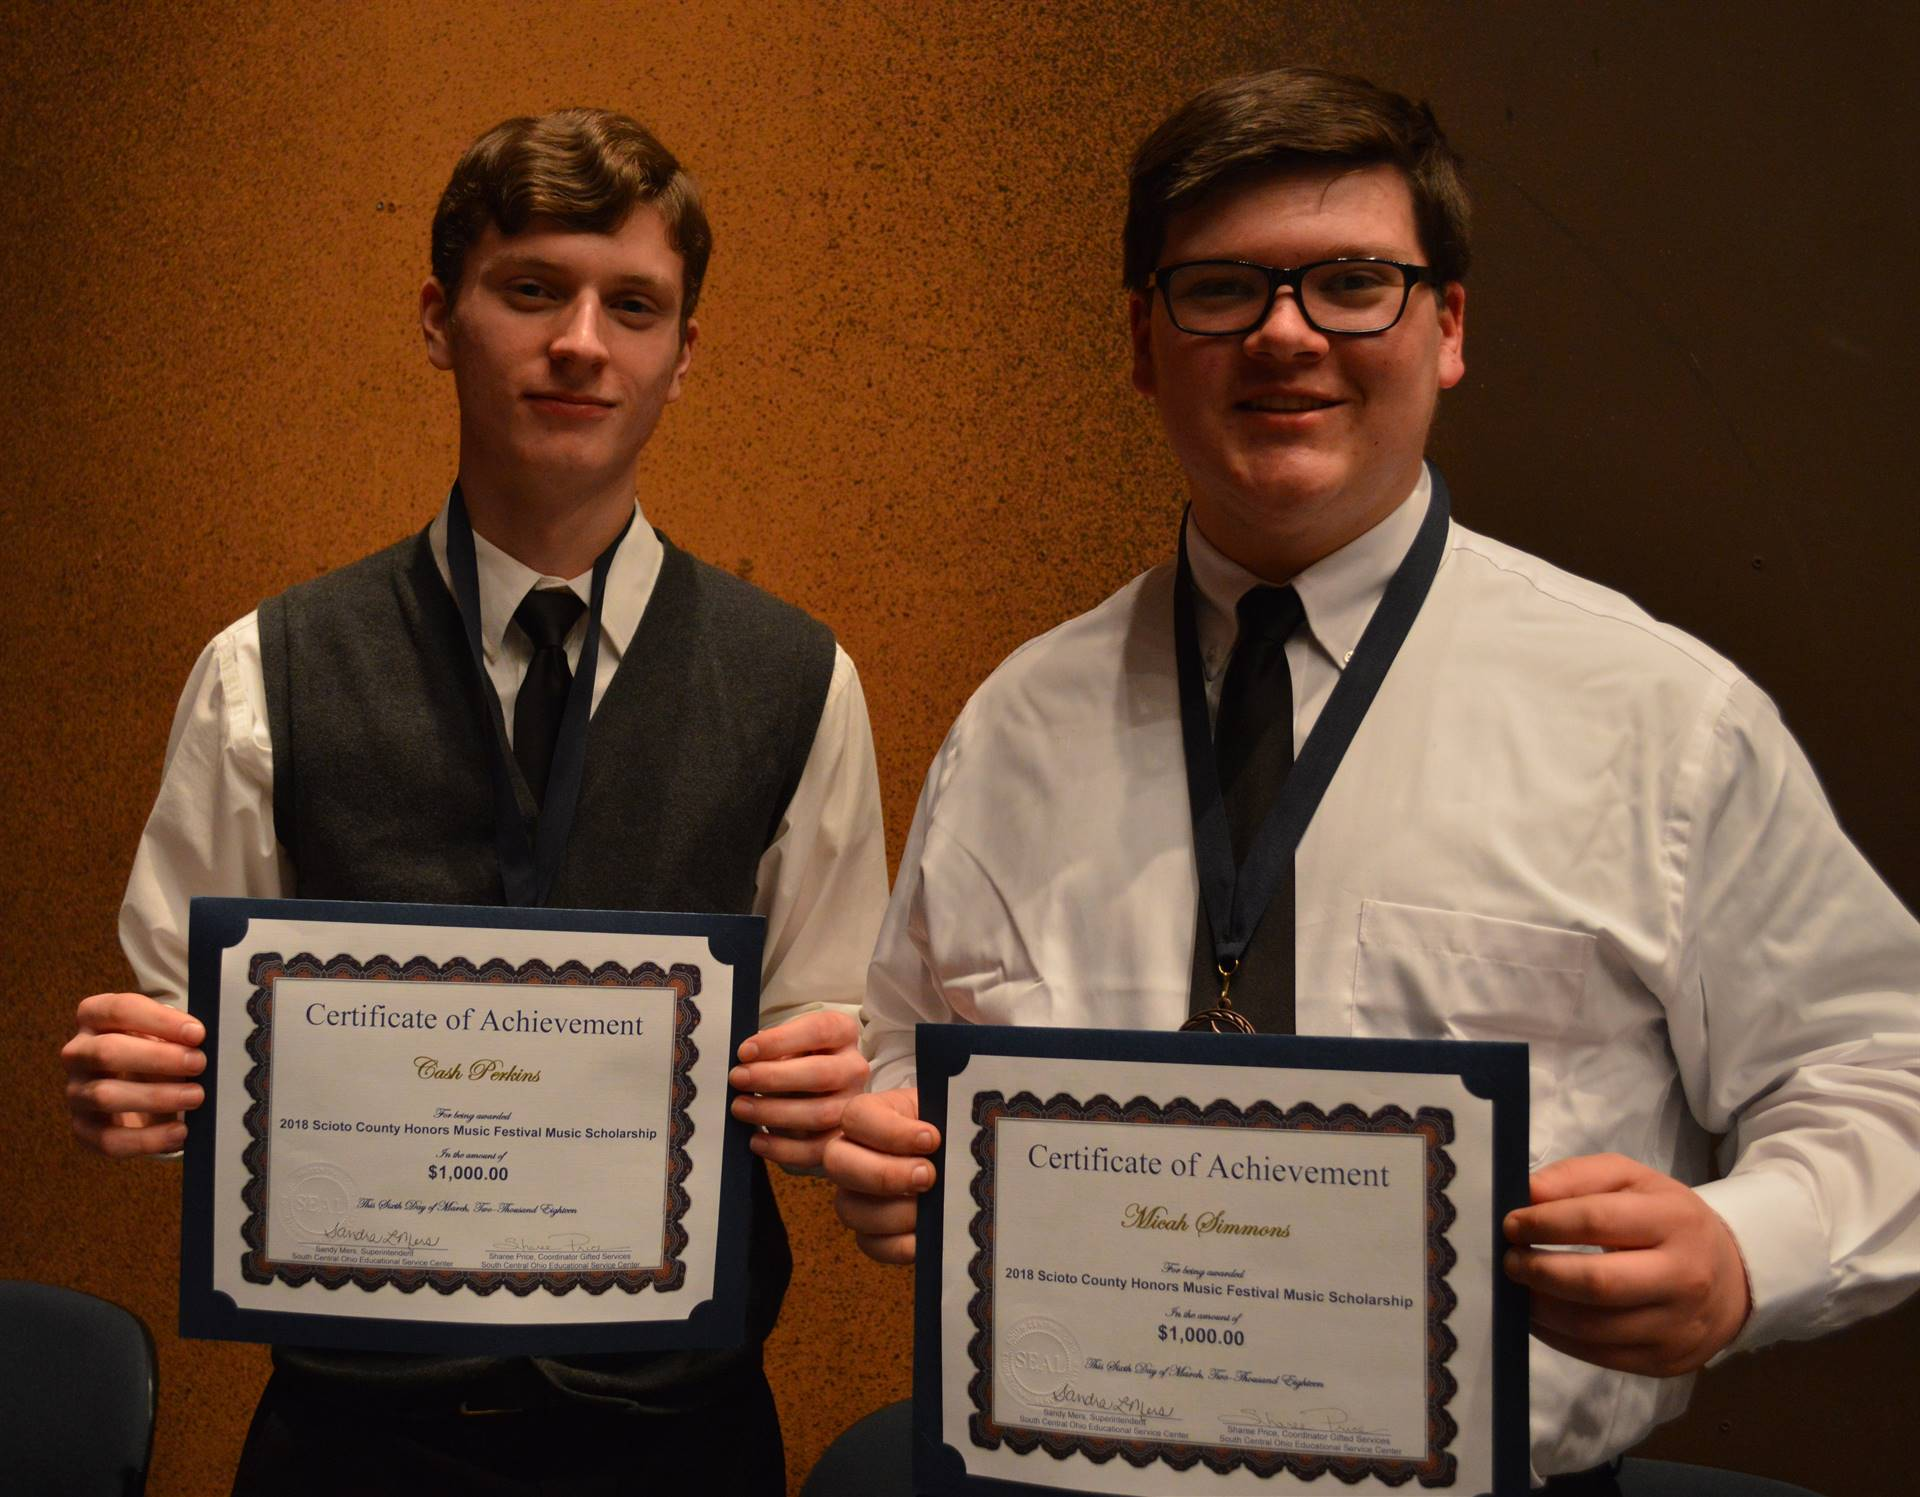 2018 Scioto County Honors Music Festival Scholarship